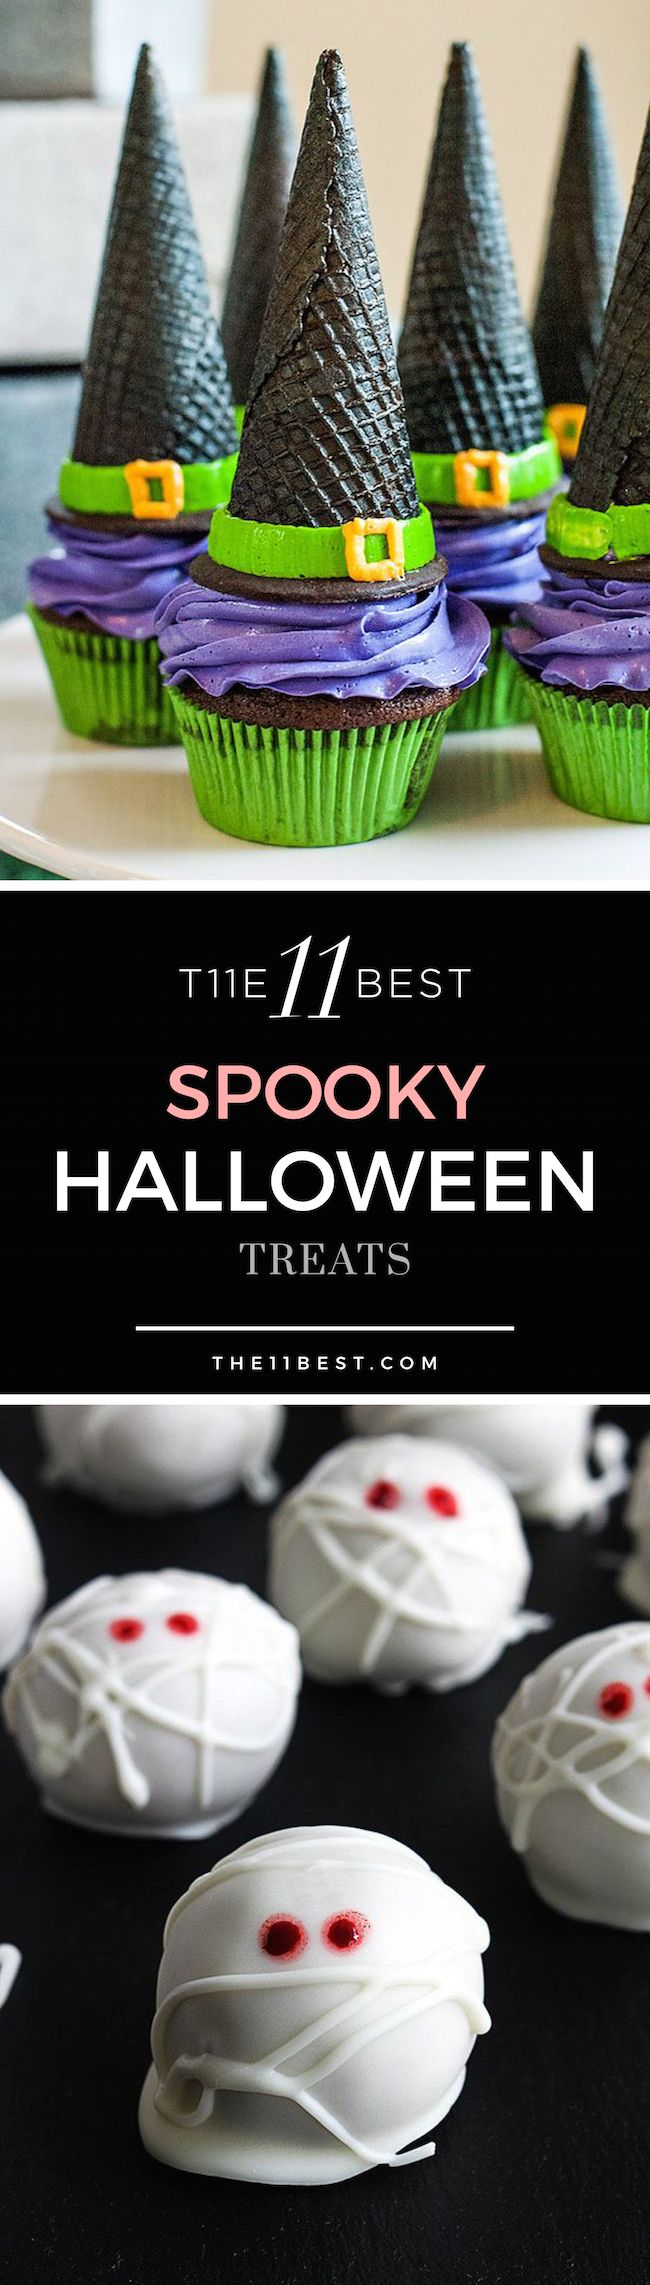 The 11 Best Halloween Treats